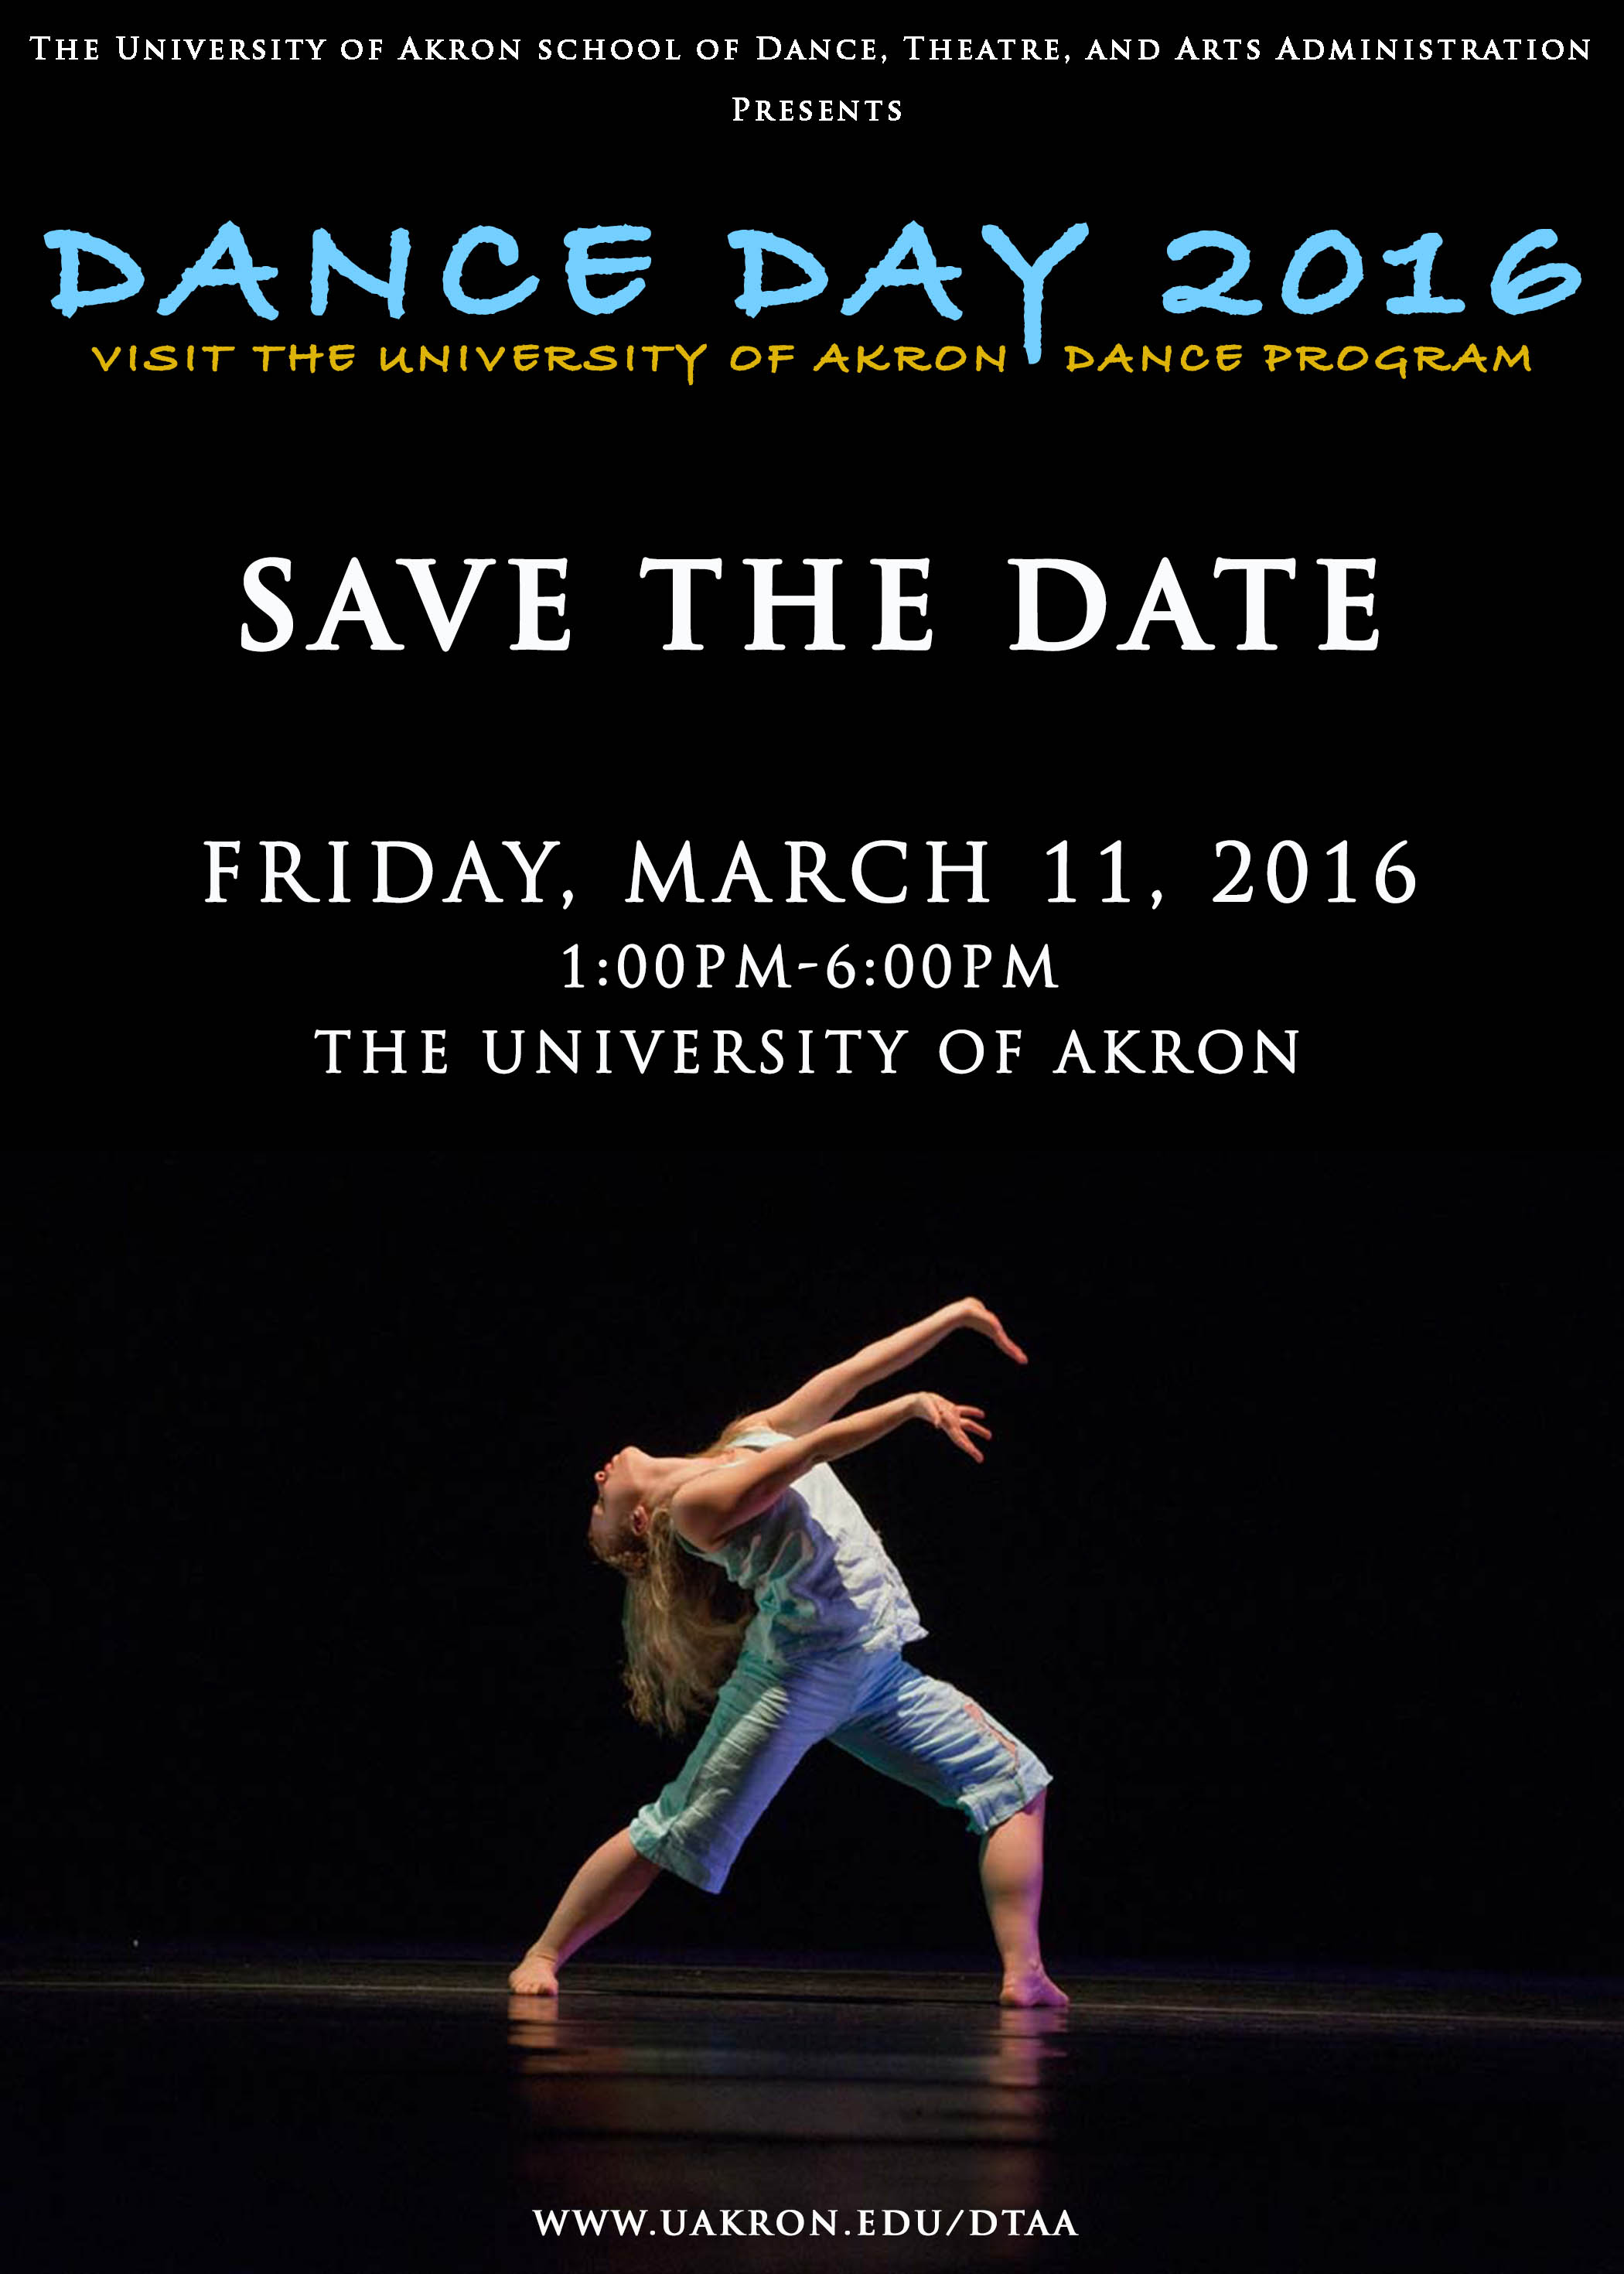 University of Akron Dance Program - Dance Day 2016